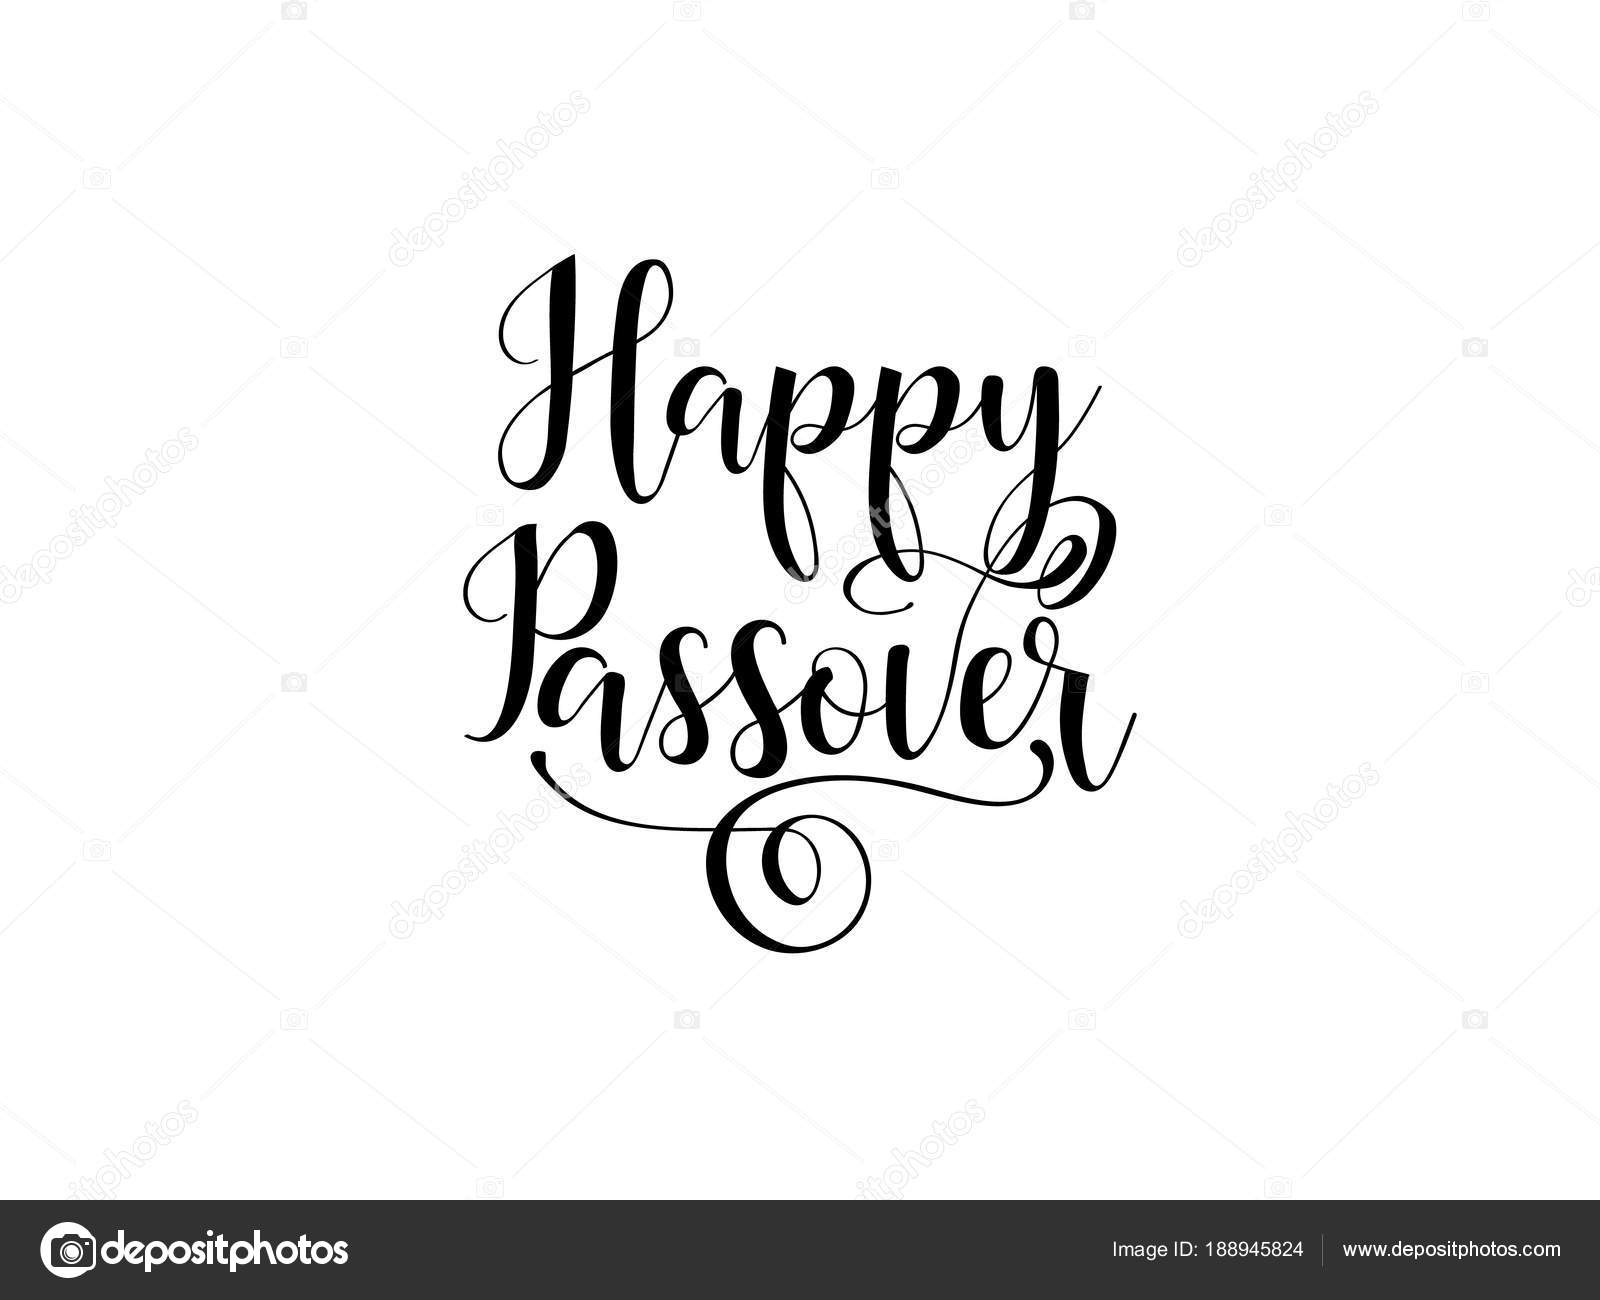 Happy passover traditional jewish holiday handwritten text vector happy passover traditional jewish holiday handwritten text vector illustration for greeting cards banners m4hsunfo